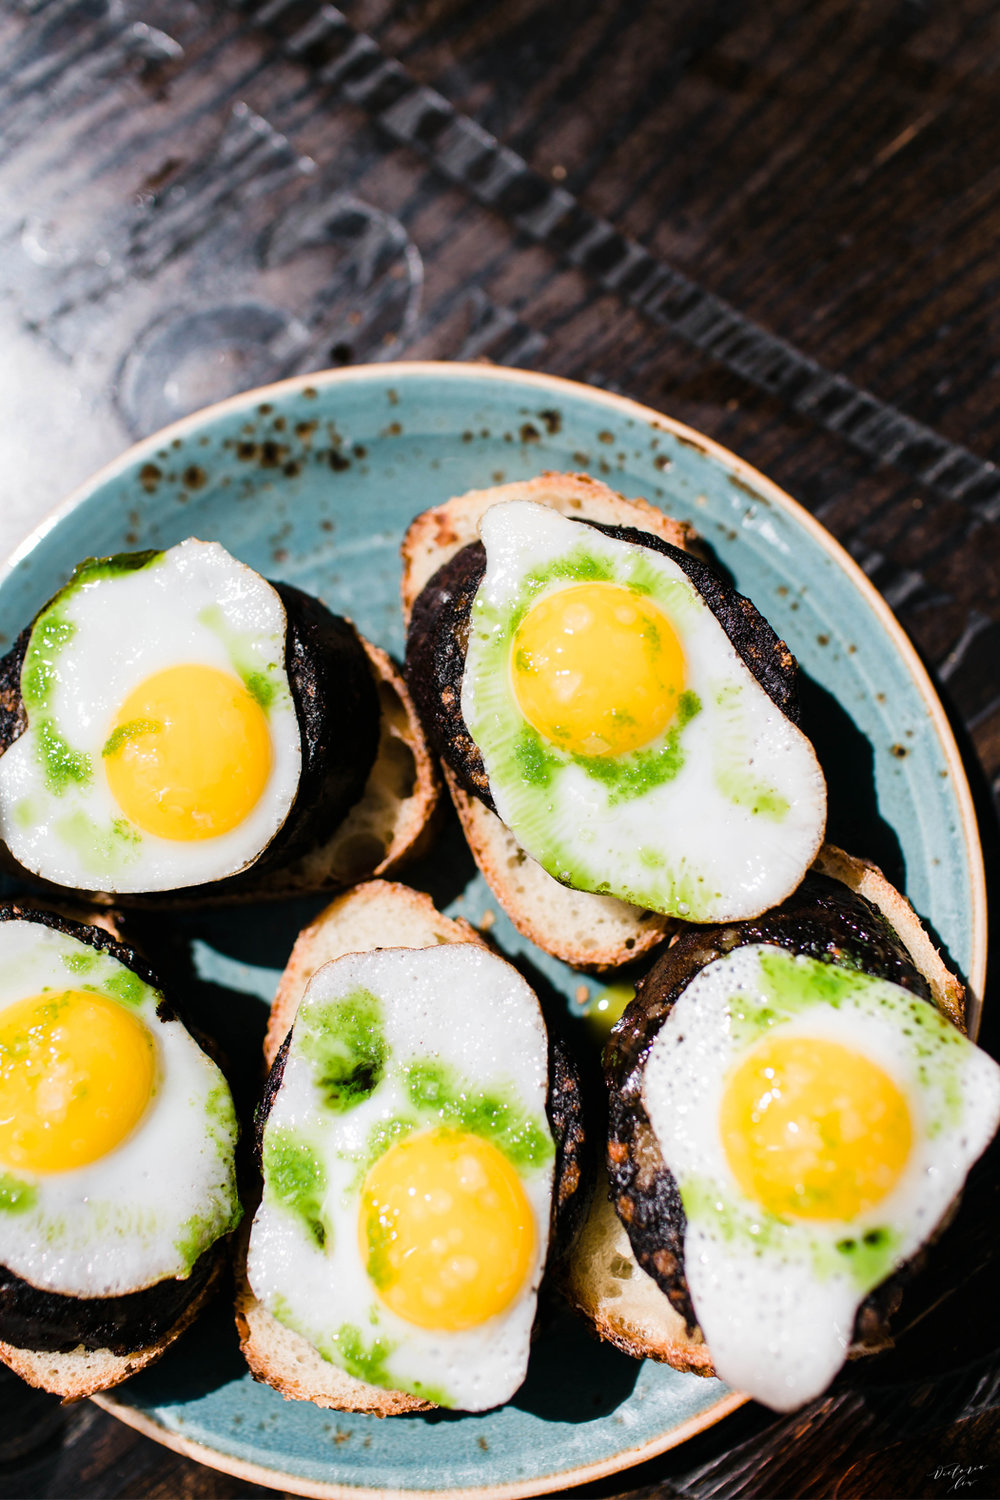 Morcilla & Egg: Bread topped with blood sausage and quail egg